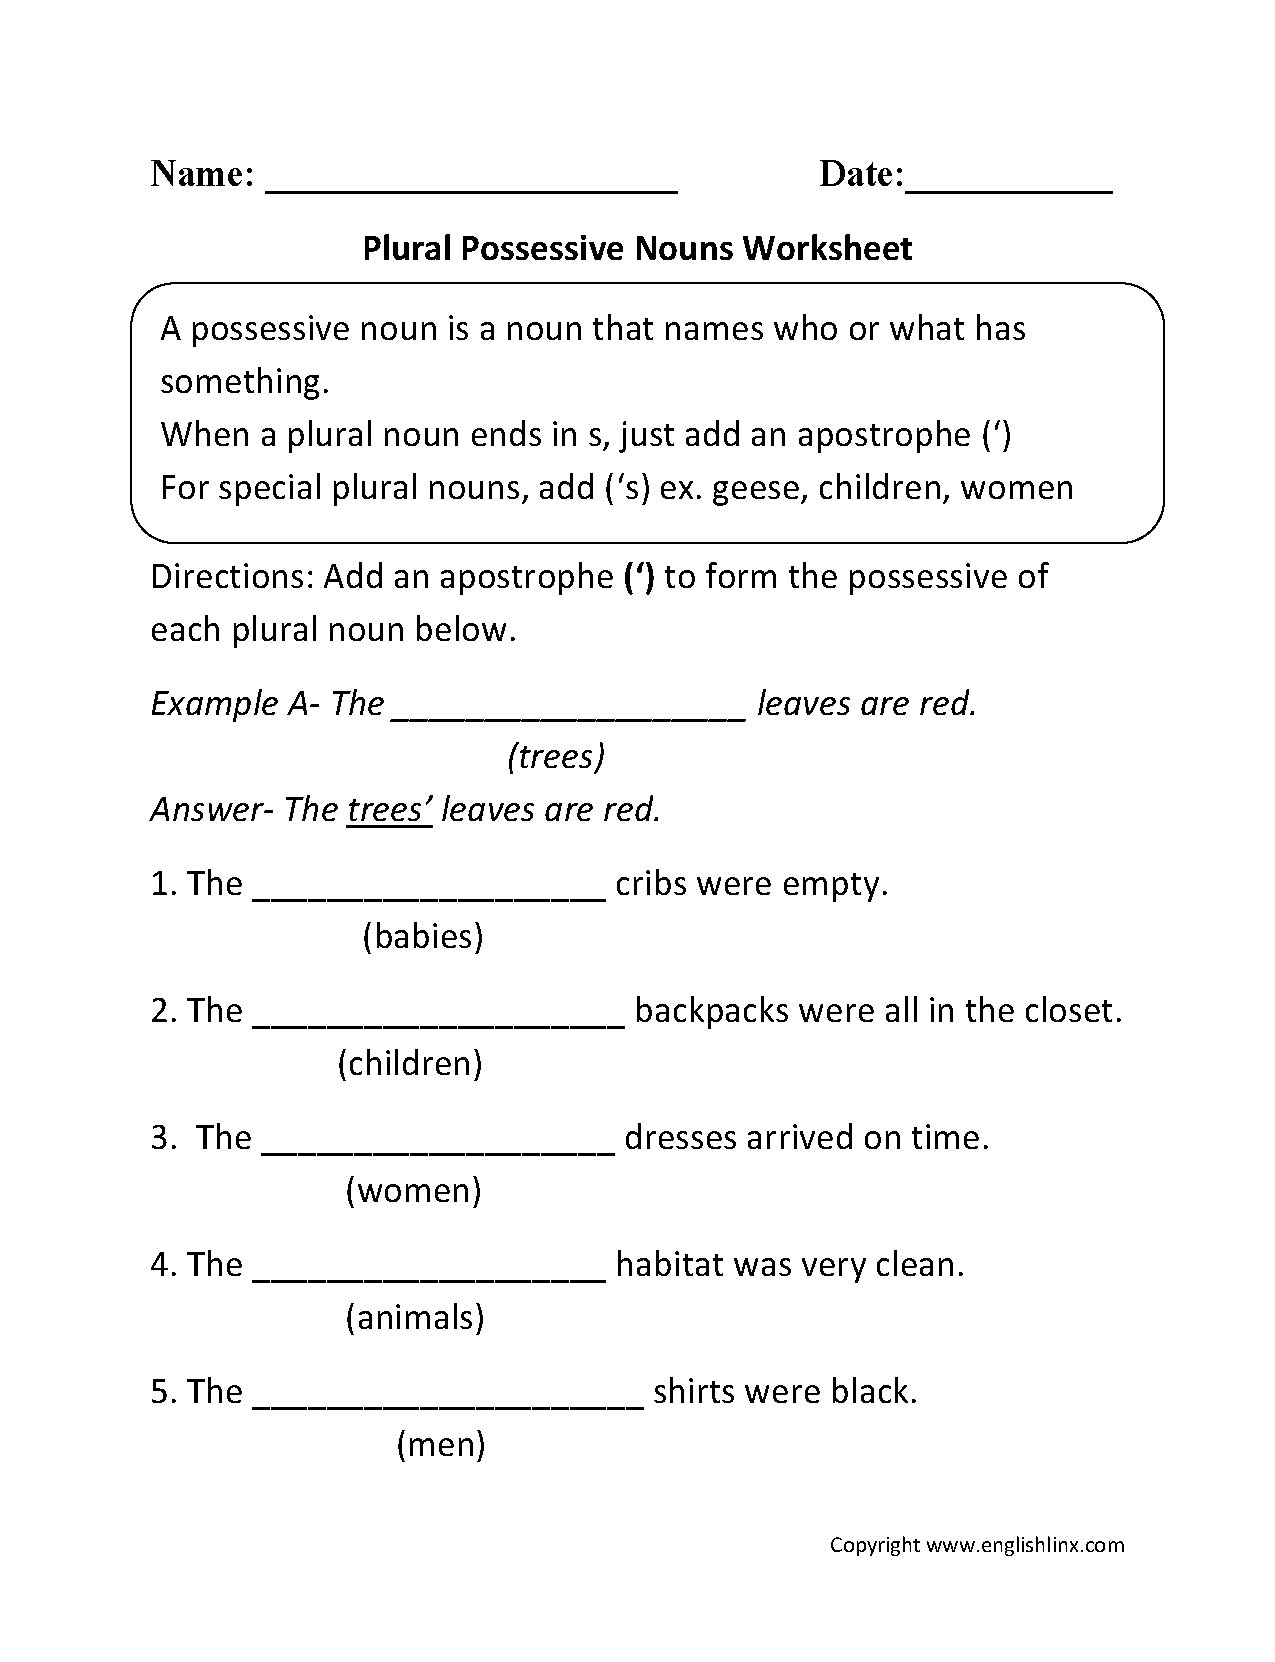 Aldiablosus  Fascinating Nouns Worksheets  Possessive Nouns Worksheets With Exciting Possessive Nouns Worksheets With Attractive Name Tracing Worksheets Also Subject And Predicate Worksheets In Addition Osmosis Worksheet And Perimeter And Area Worksheets As Well As Solving Equations Worksheet Additionally Simple Interest Worksheet From Englishlinxcom With Aldiablosus  Exciting Nouns Worksheets  Possessive Nouns Worksheets With Attractive Possessive Nouns Worksheets And Fascinating Name Tracing Worksheets Also Subject And Predicate Worksheets In Addition Osmosis Worksheet From Englishlinxcom